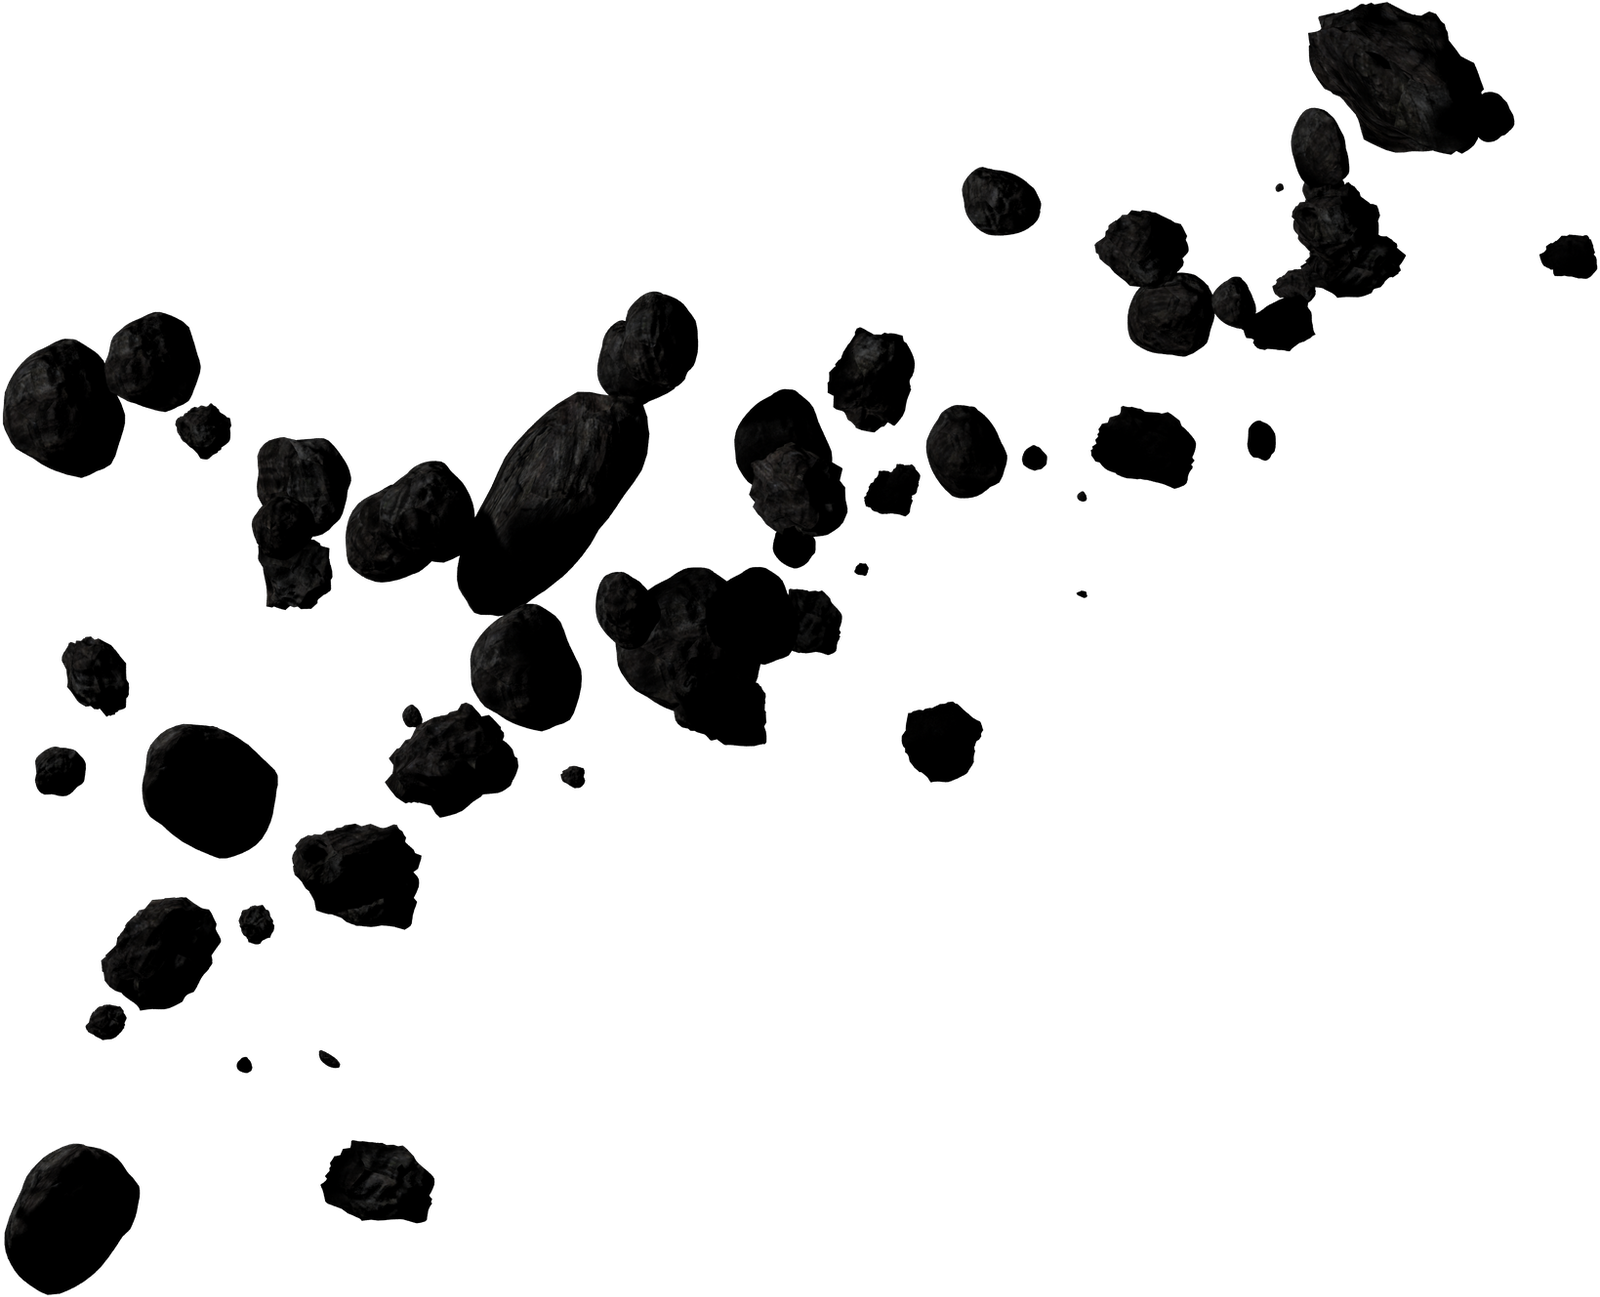 asteroid clipart transparent - photo #36